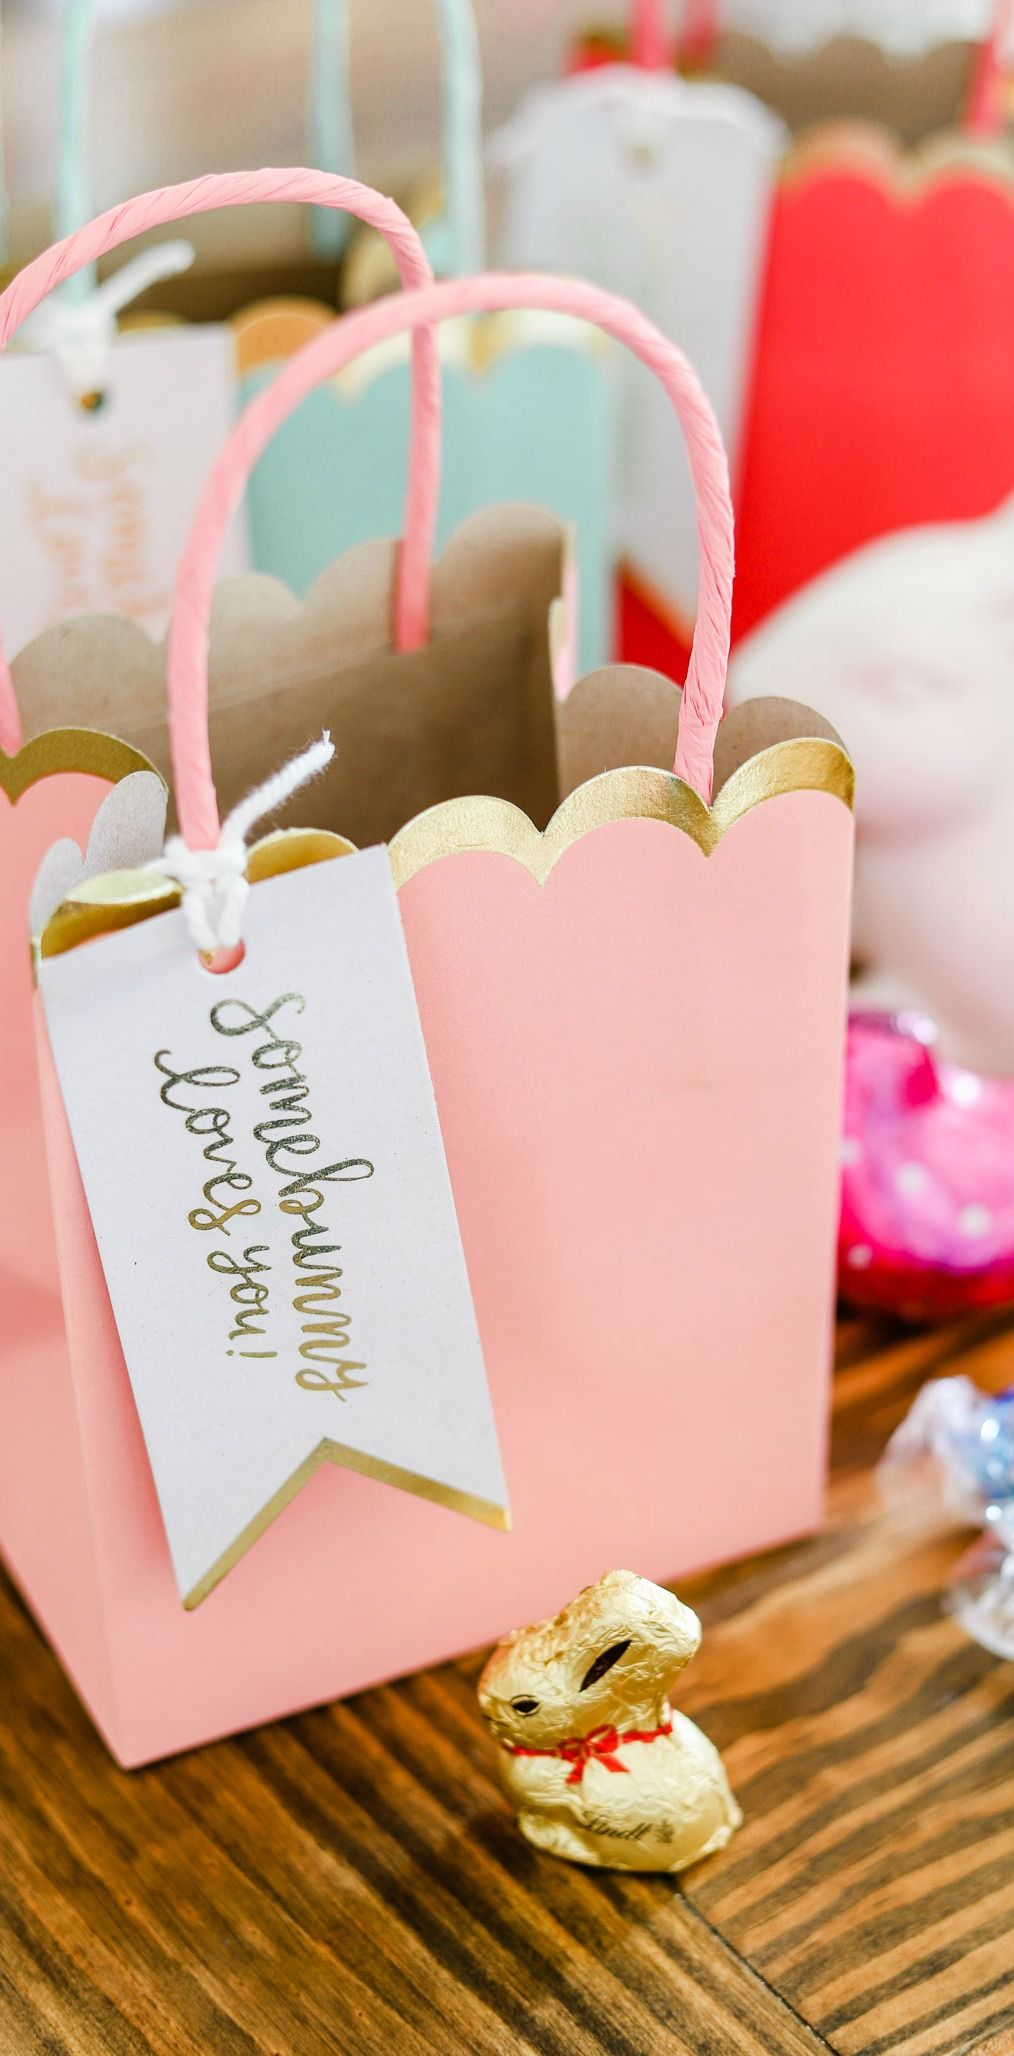 Cute Easter Basket Ideas + Easter Party Favors | Basket ideas ...